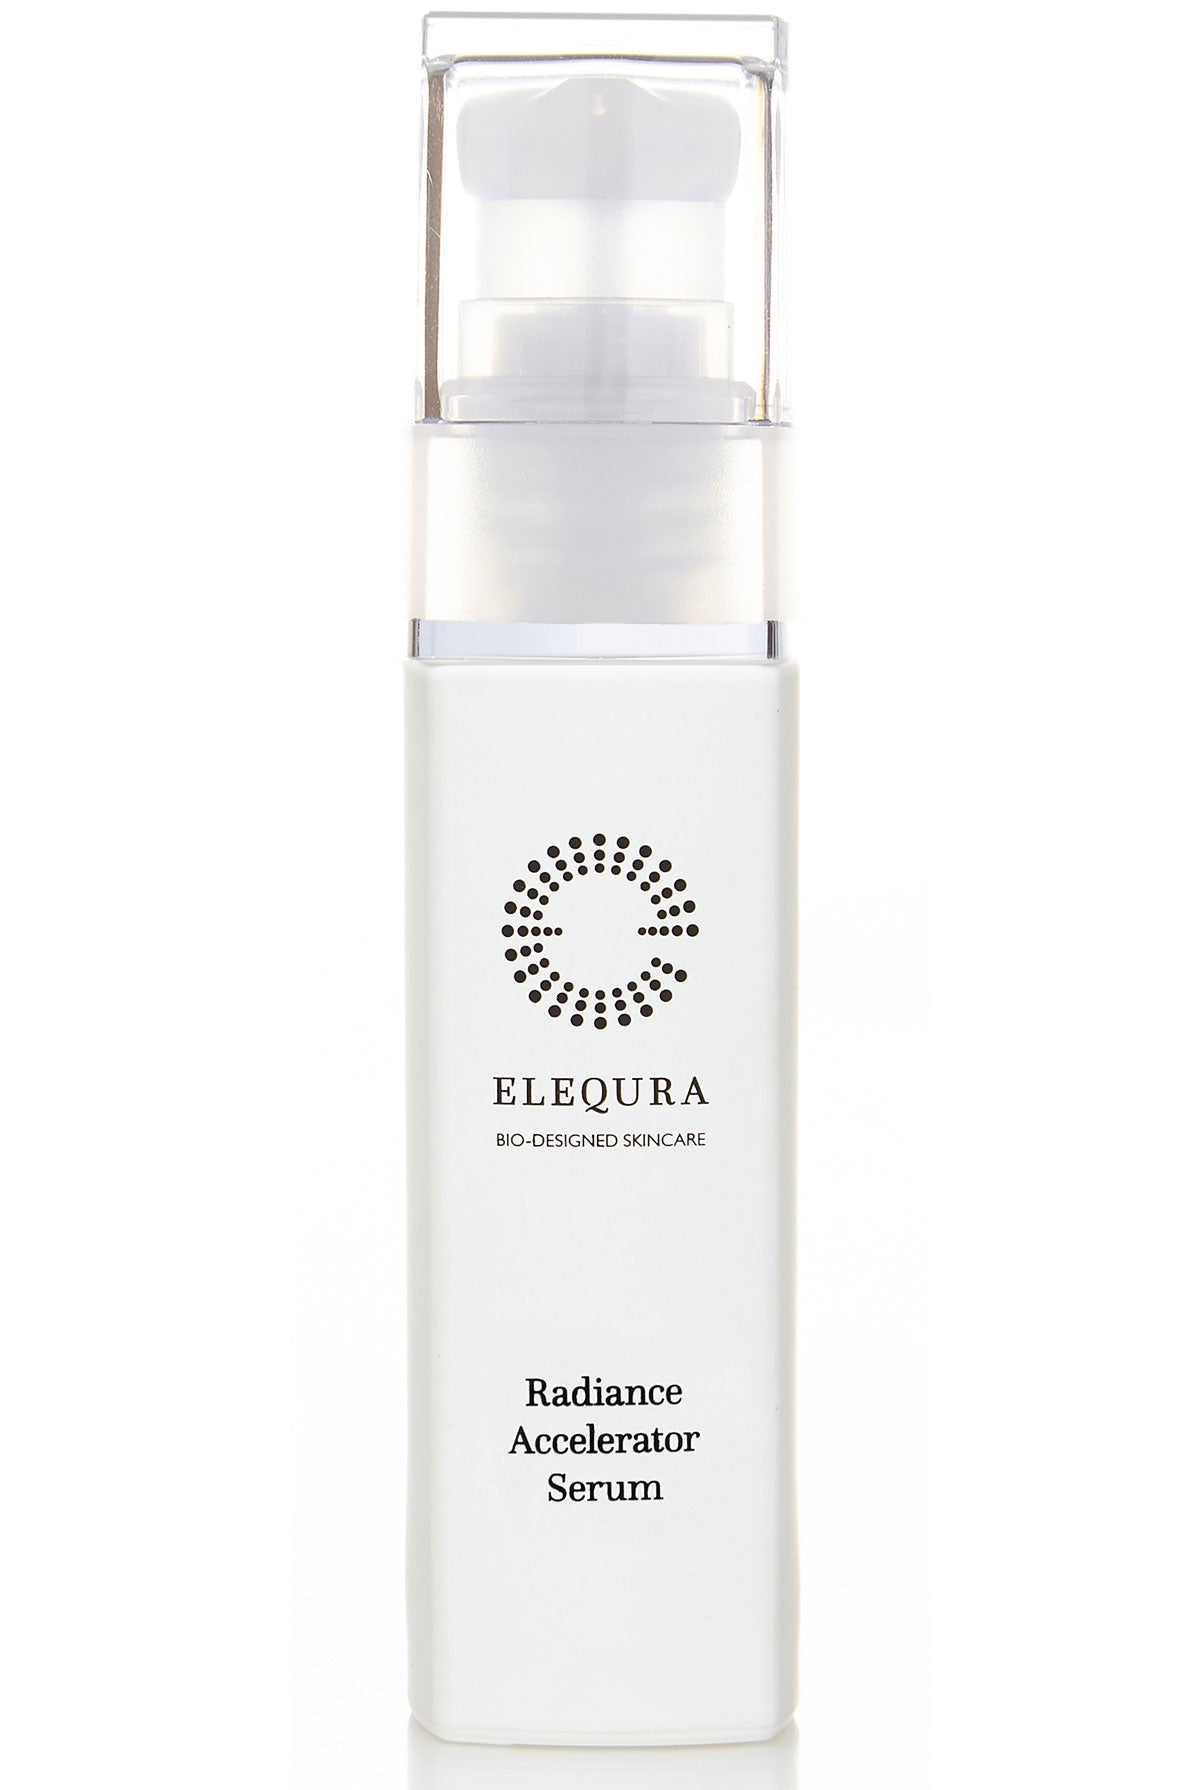 Elequra Radiance Accelerator Serum - 30ml